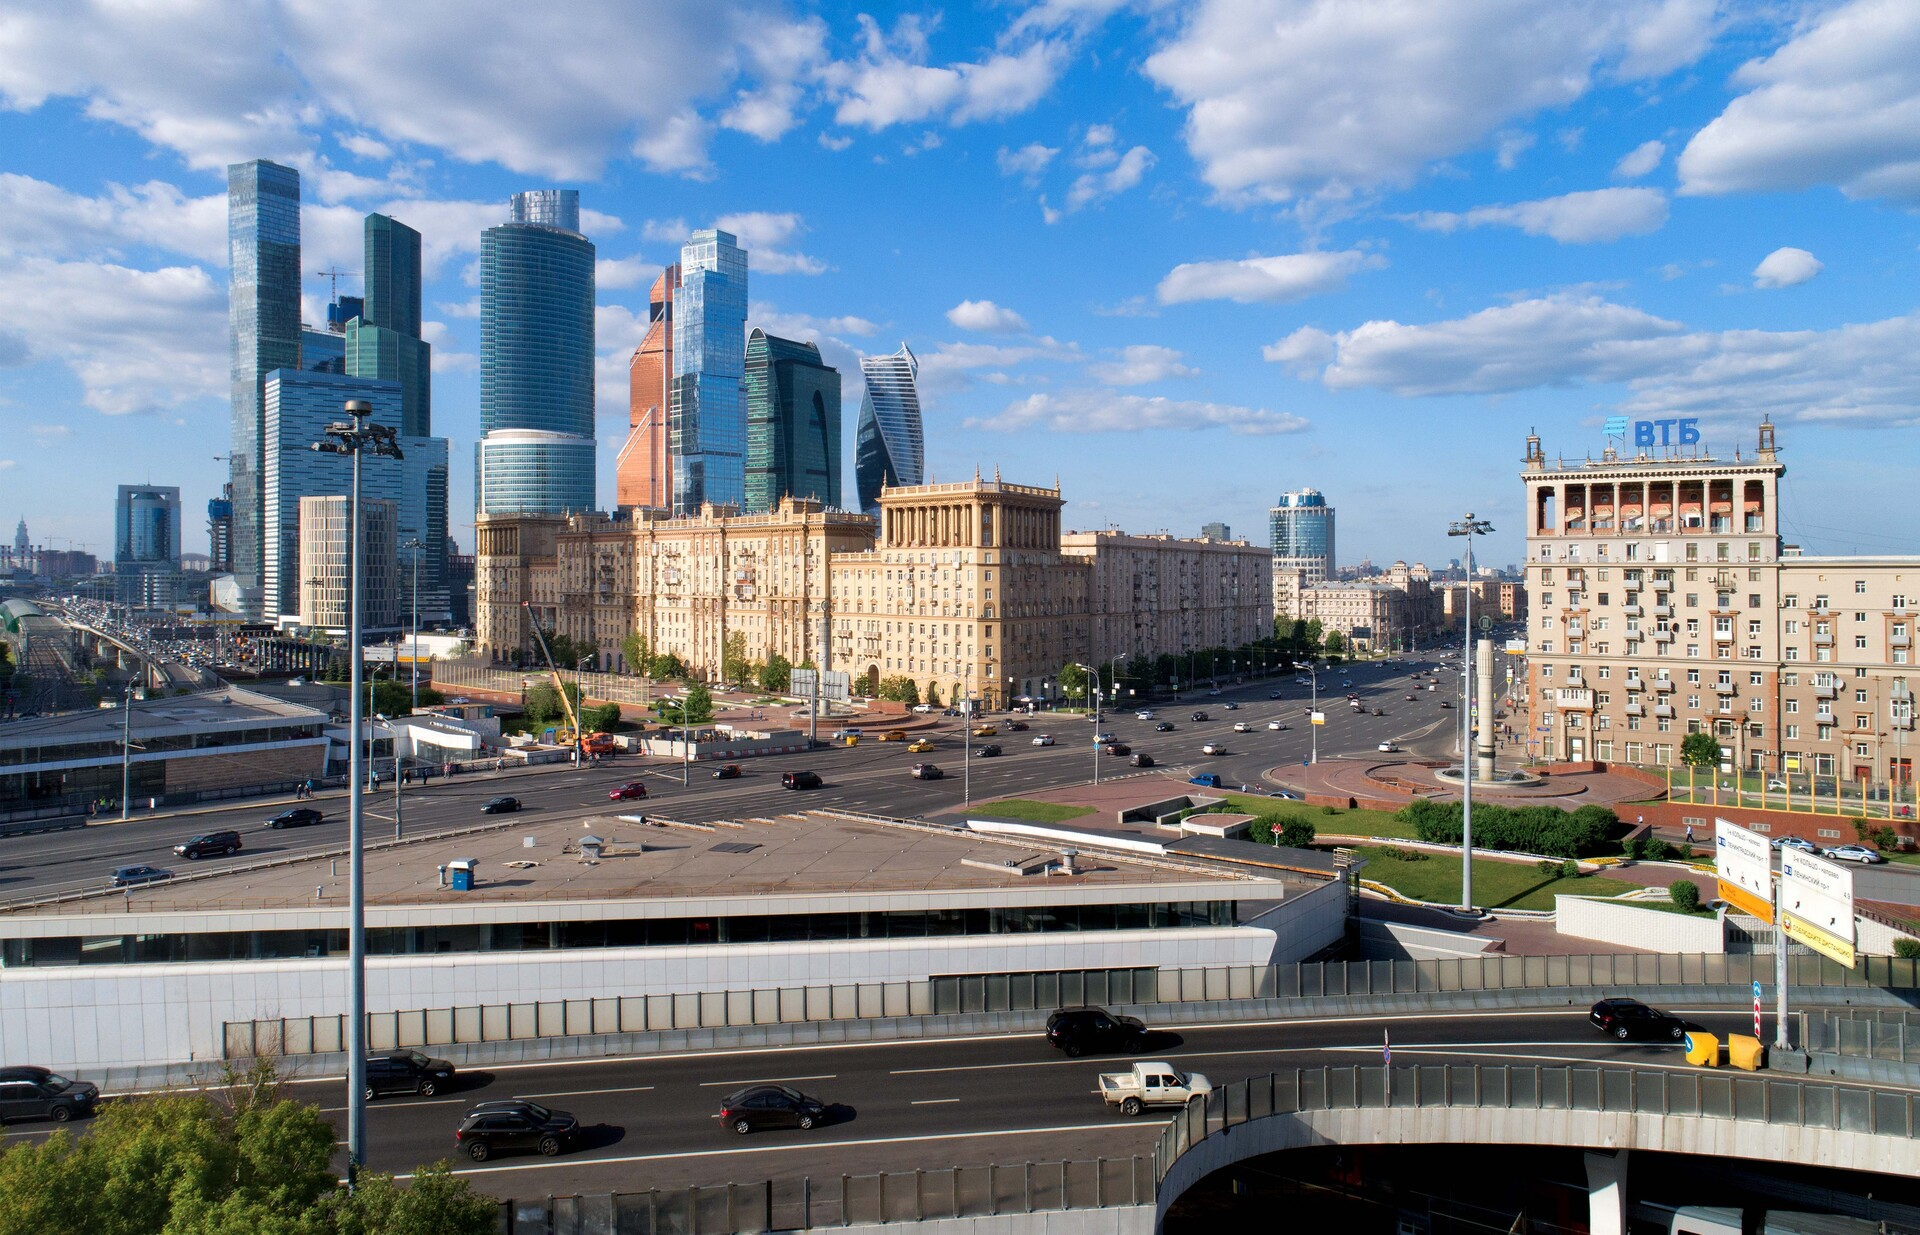 Cristina's Experience in Moscow, Russia